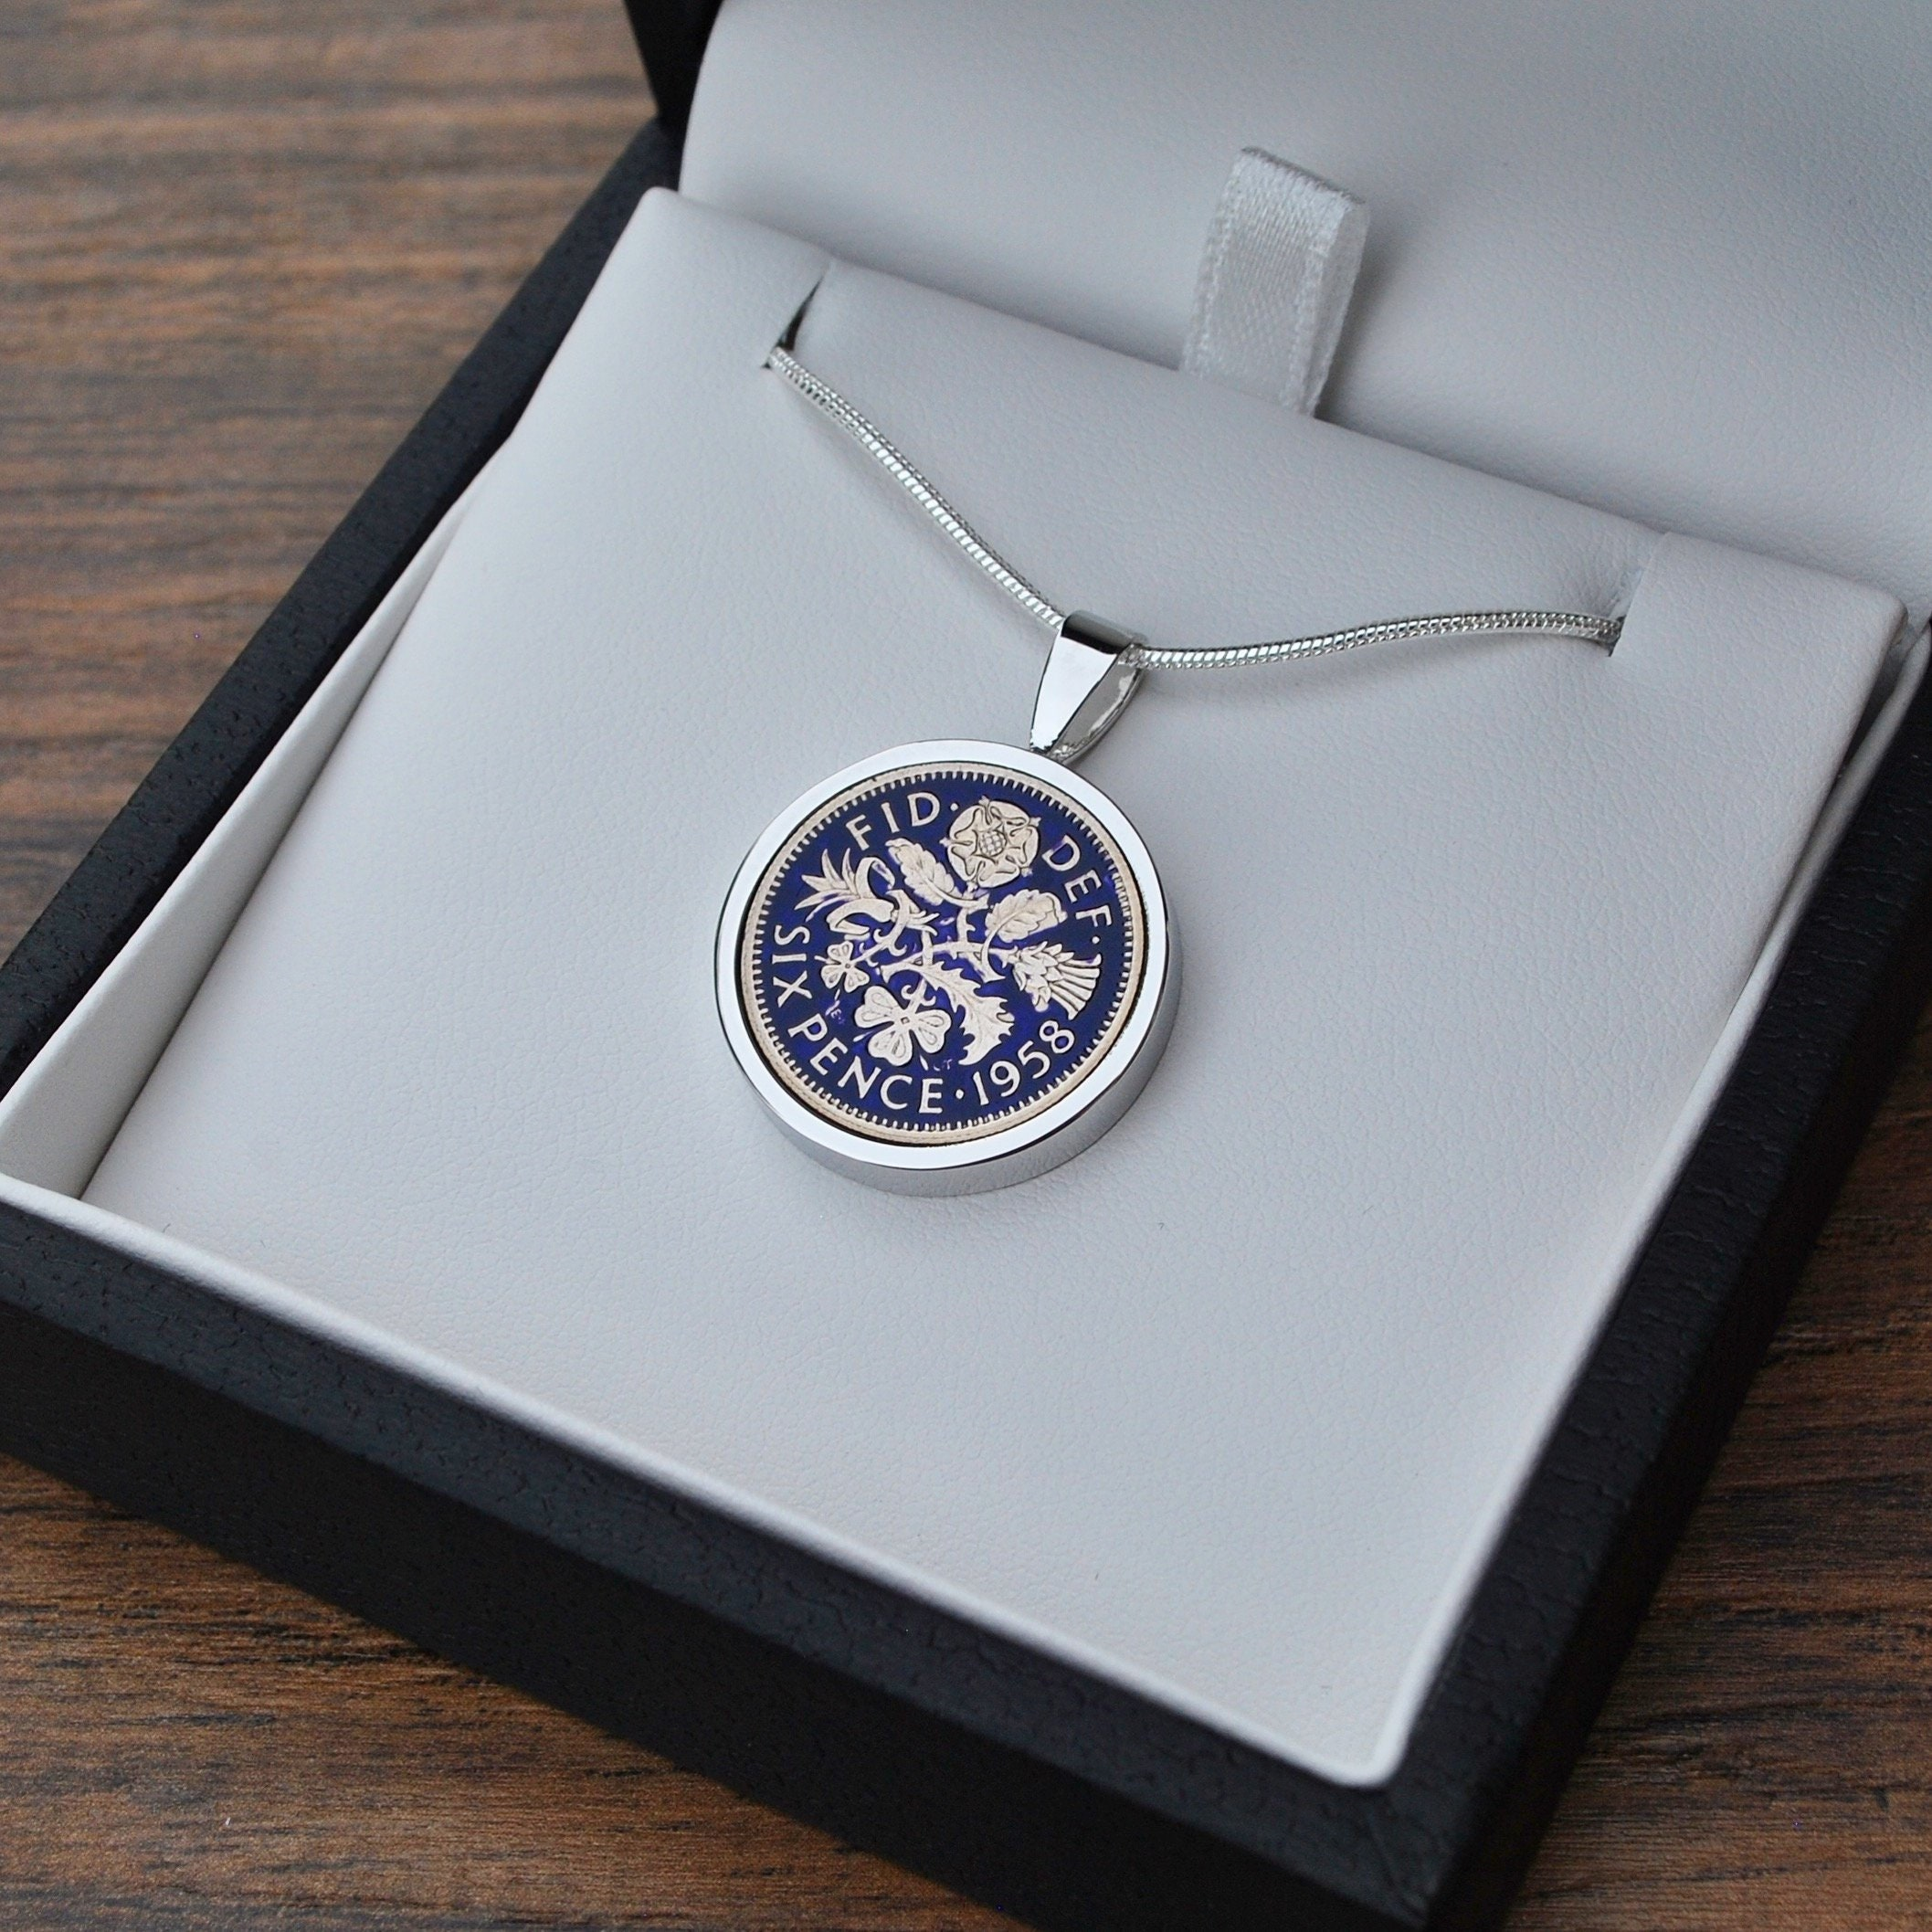 1954 65th Birthday Gift Retirement Her Necklace